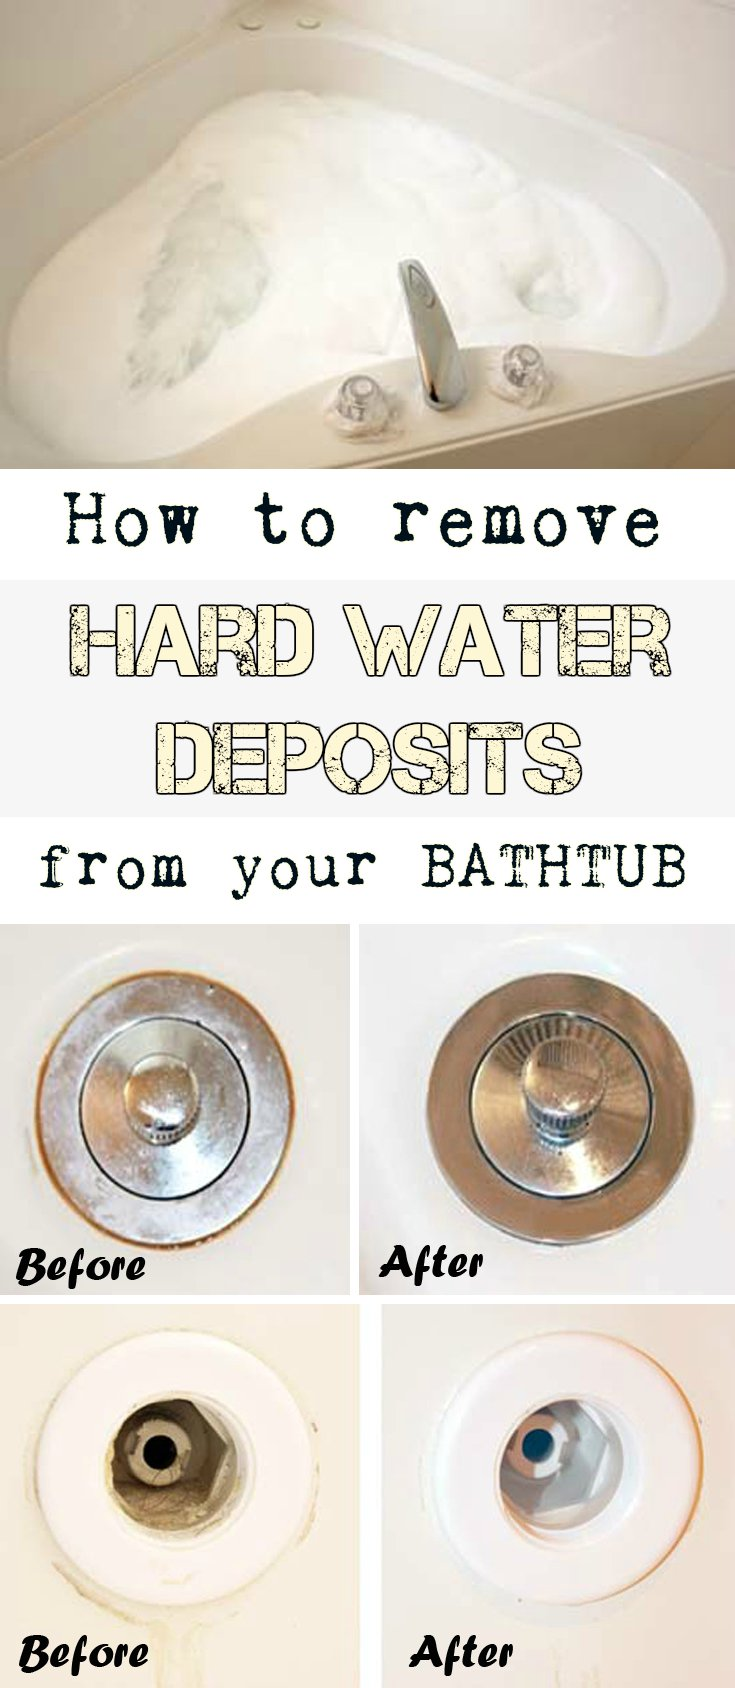 How to remove hard water deposits from your bathtub - How to remove rust stains from clothes in a few easy steps ...